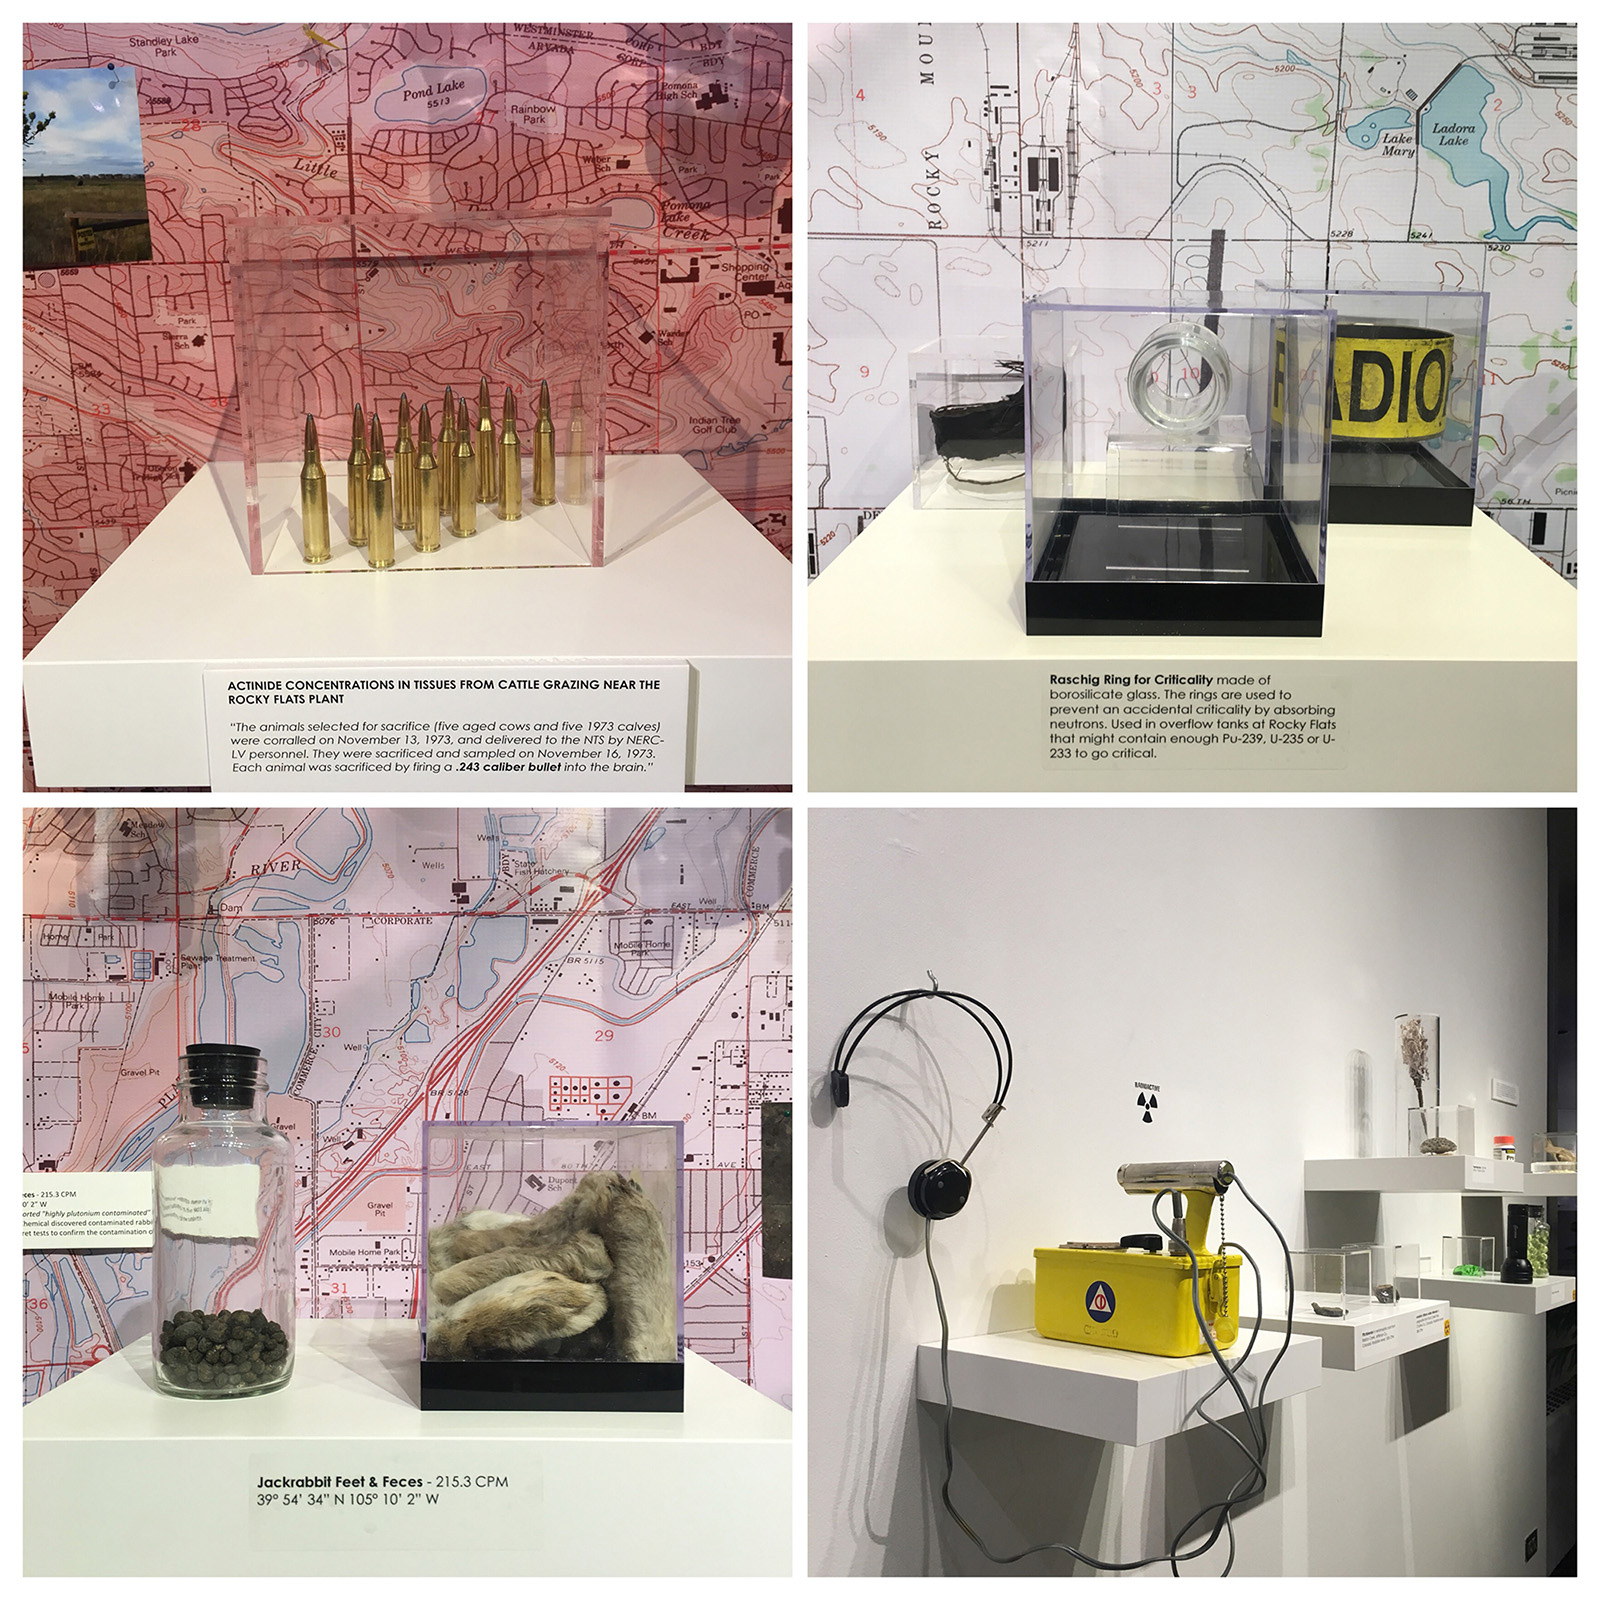 Grid of four images showing different individual artifacts in vitrines from Gregg Schlanger's art installation.